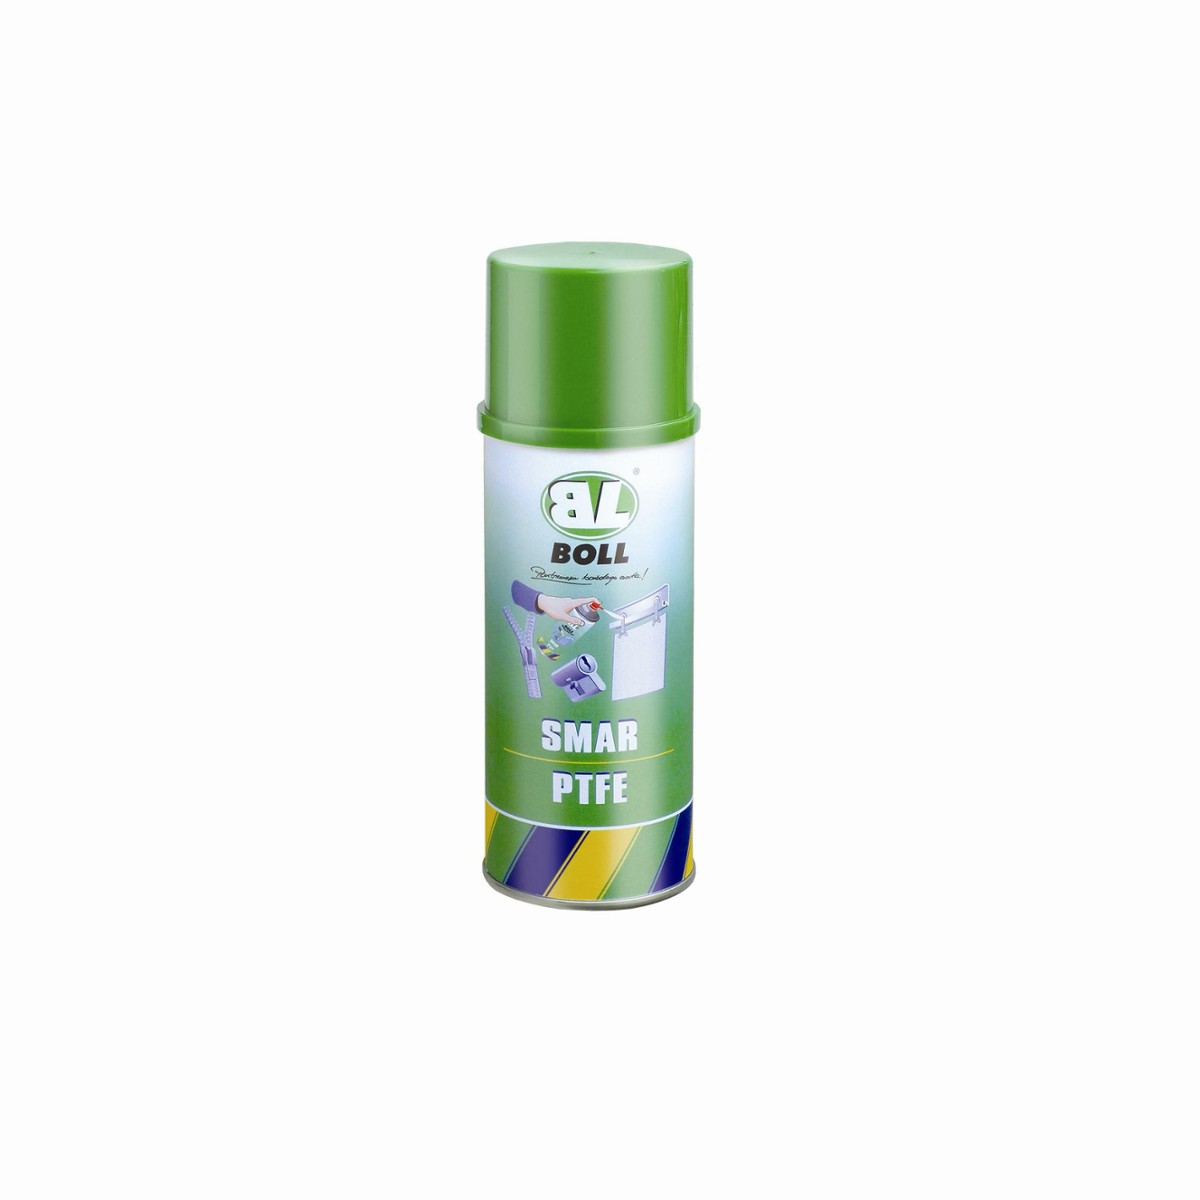 BOLL smar PTFE teflon - spray 400ml